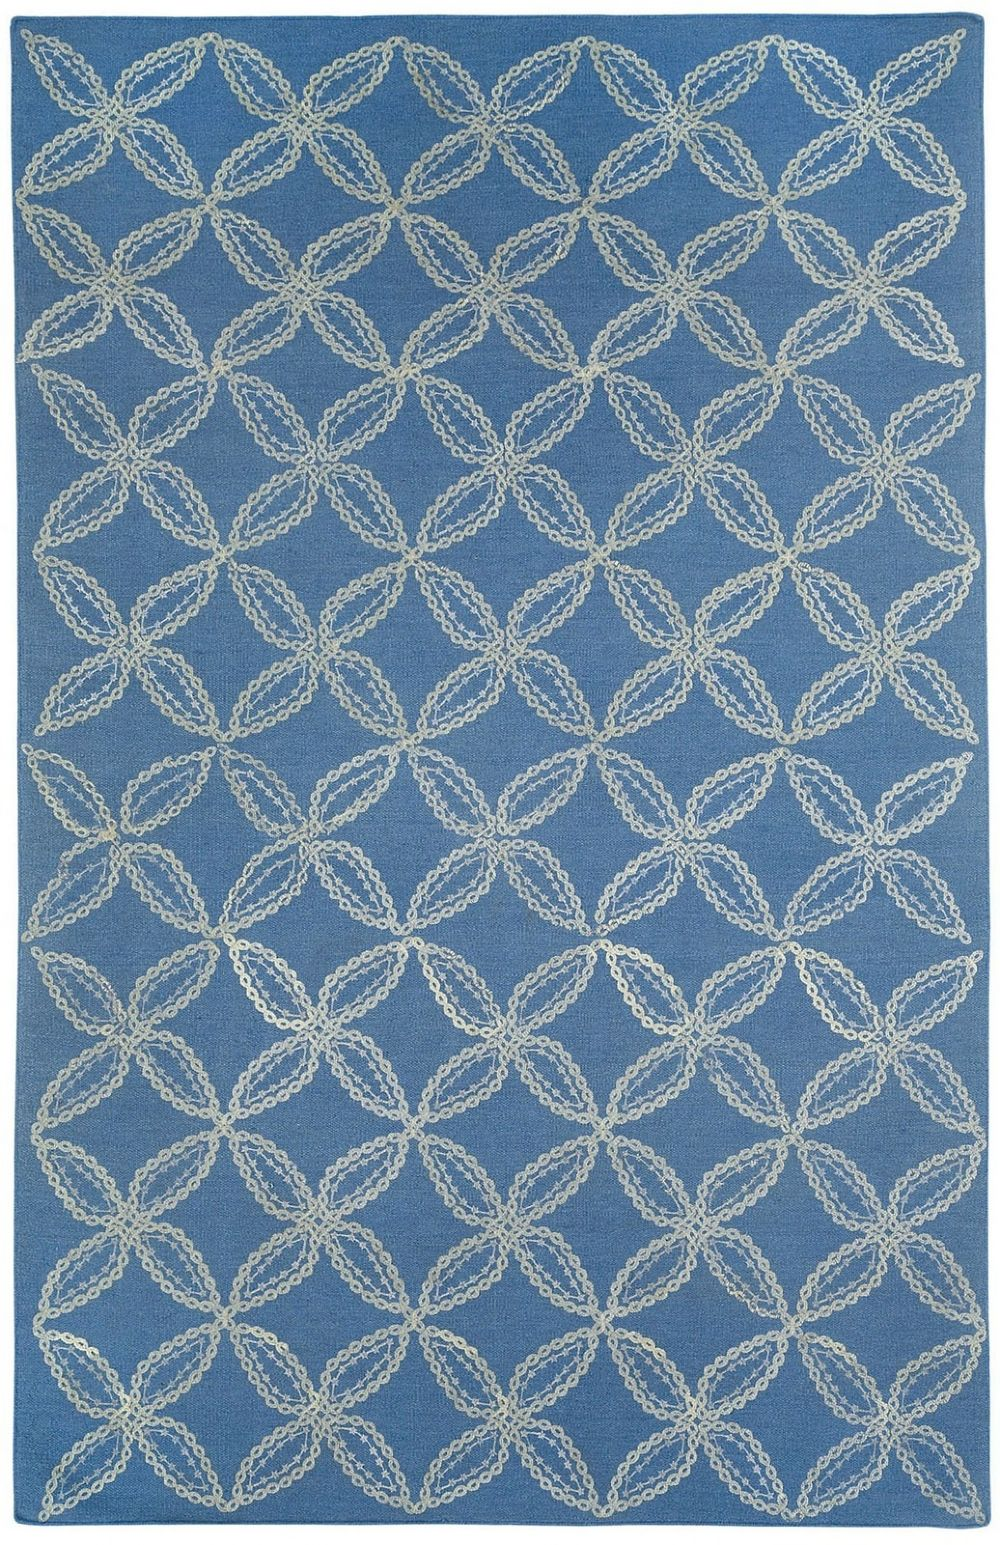 capel linc contemporary area rug collection